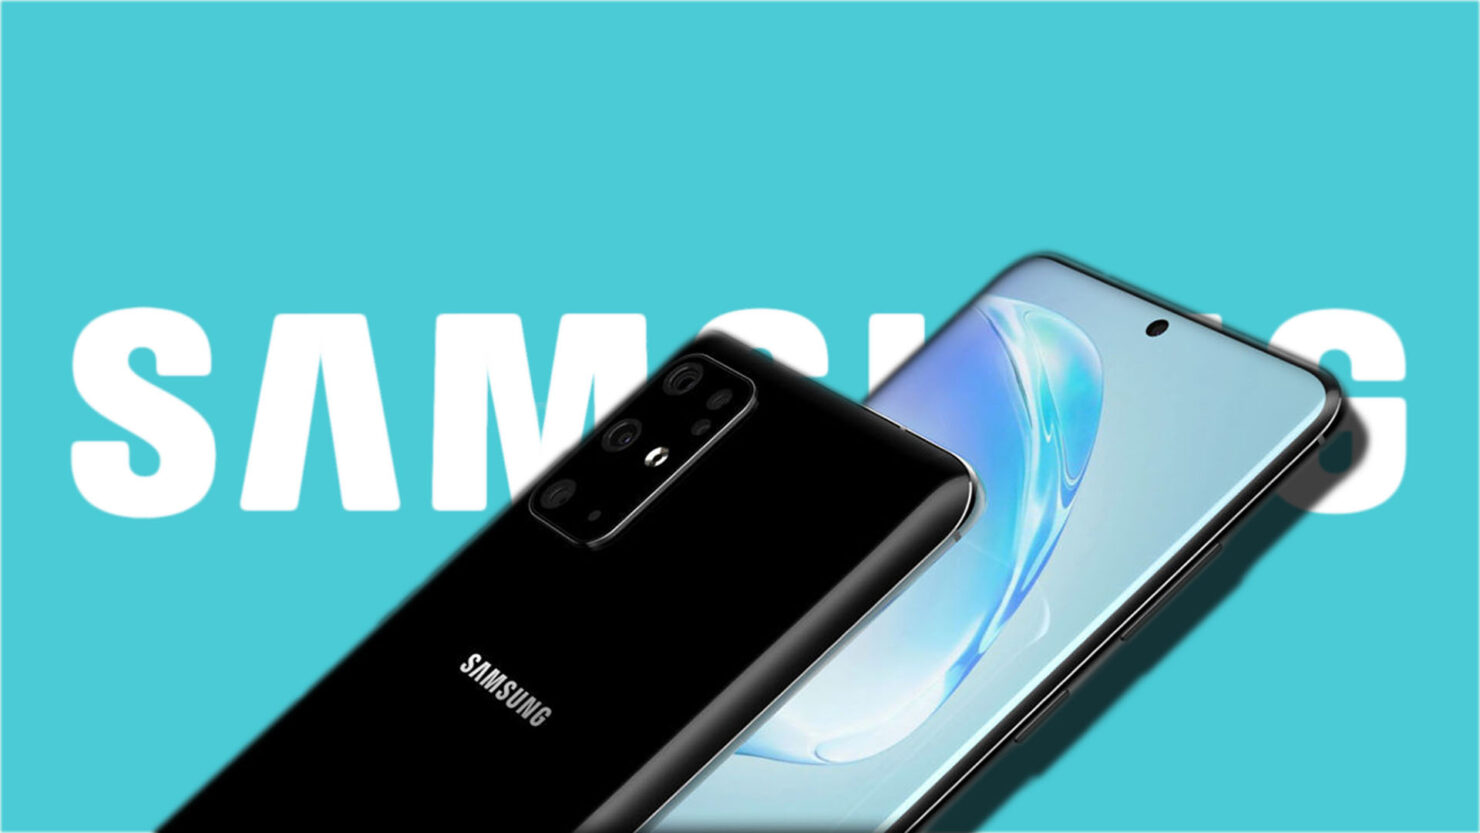 Blurry Galaxy S11 Live Images Allegedly Show Large Rear Camera Hump